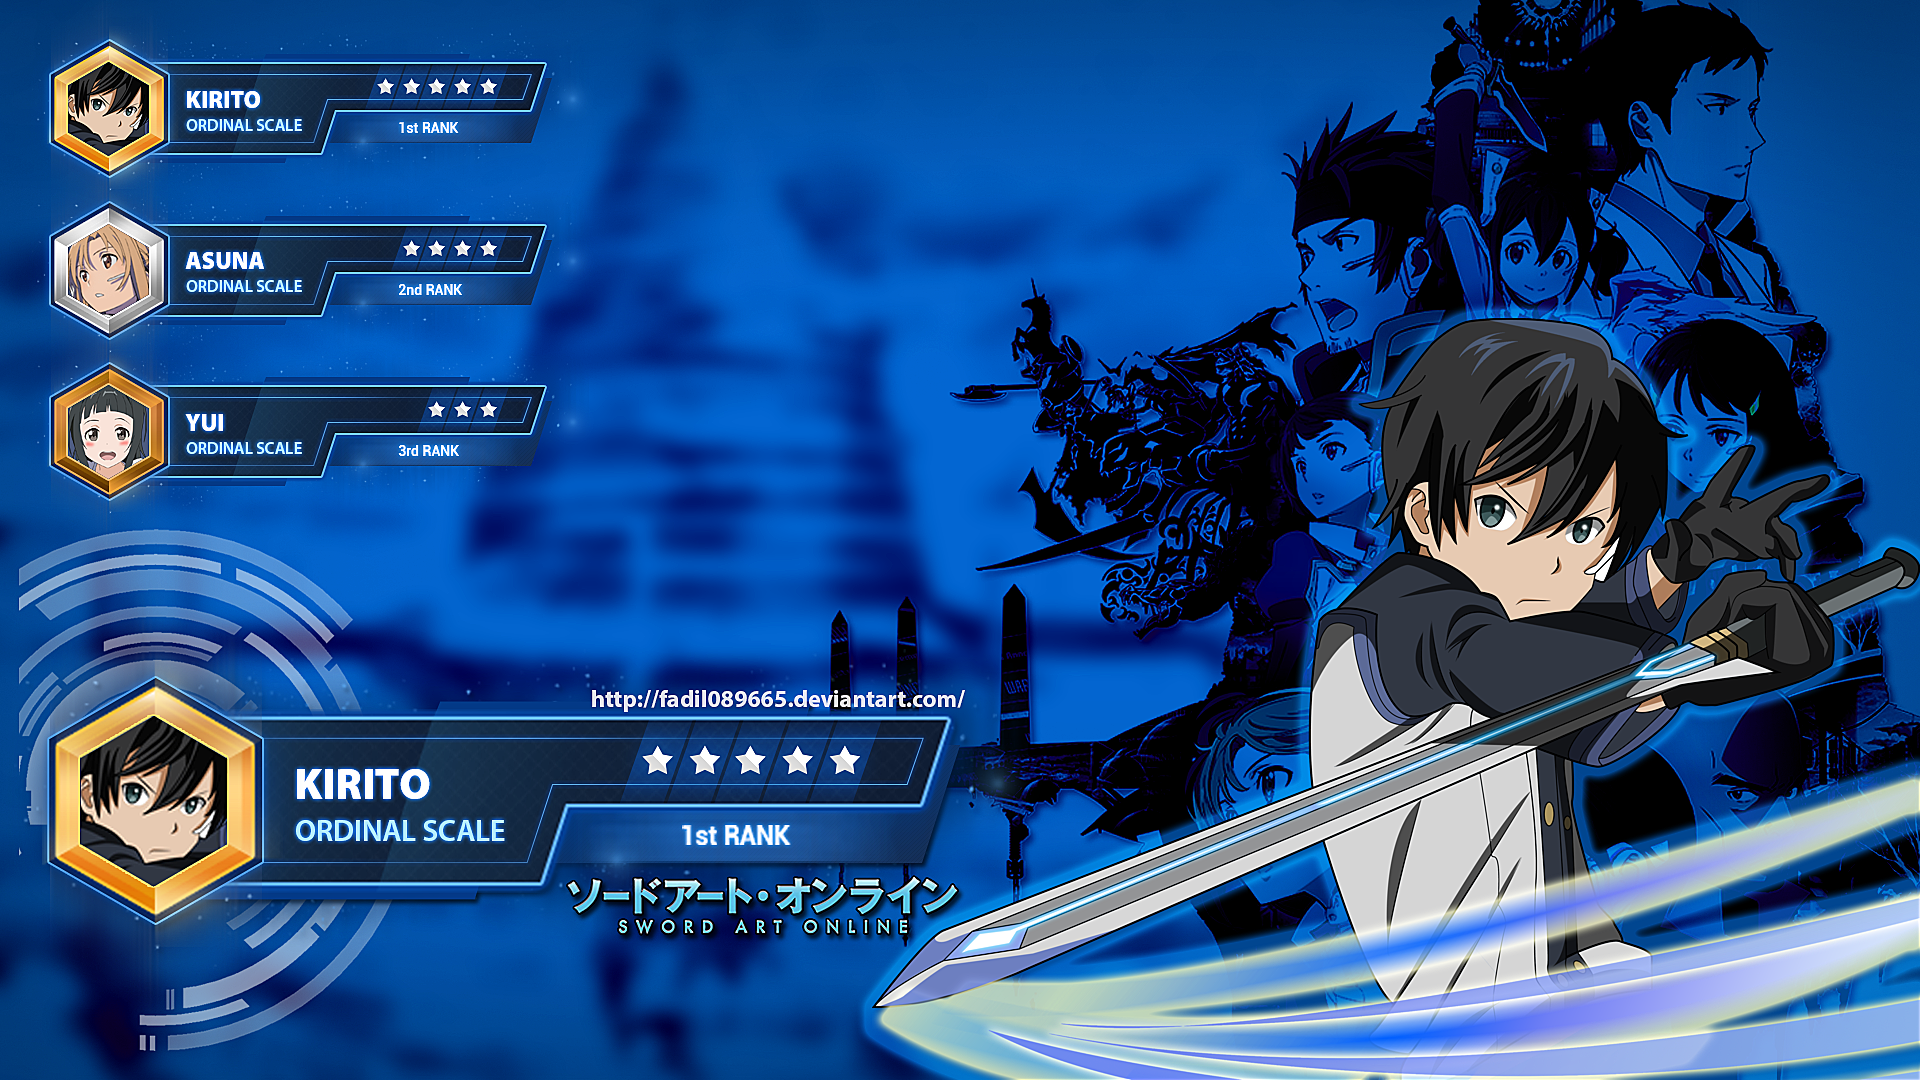 Sword Art Online Wallpapers Desktop Kirito By Fadil089665 On